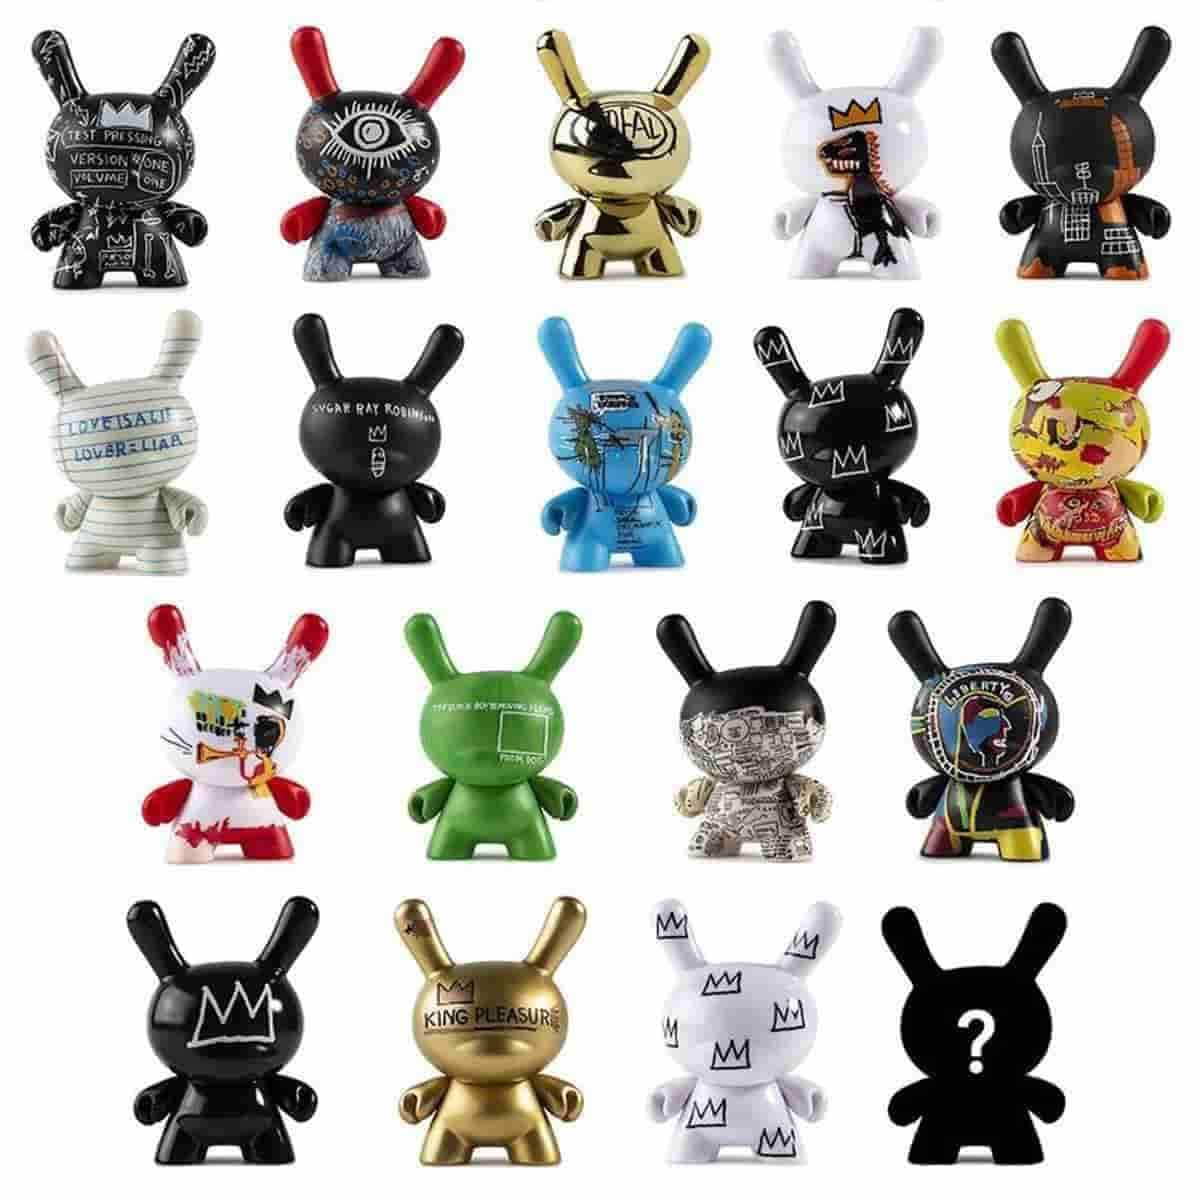 Jean-Michael Basquiat Dunny Series by Kidrobot - Full Case 24pcs - IamRetro.com